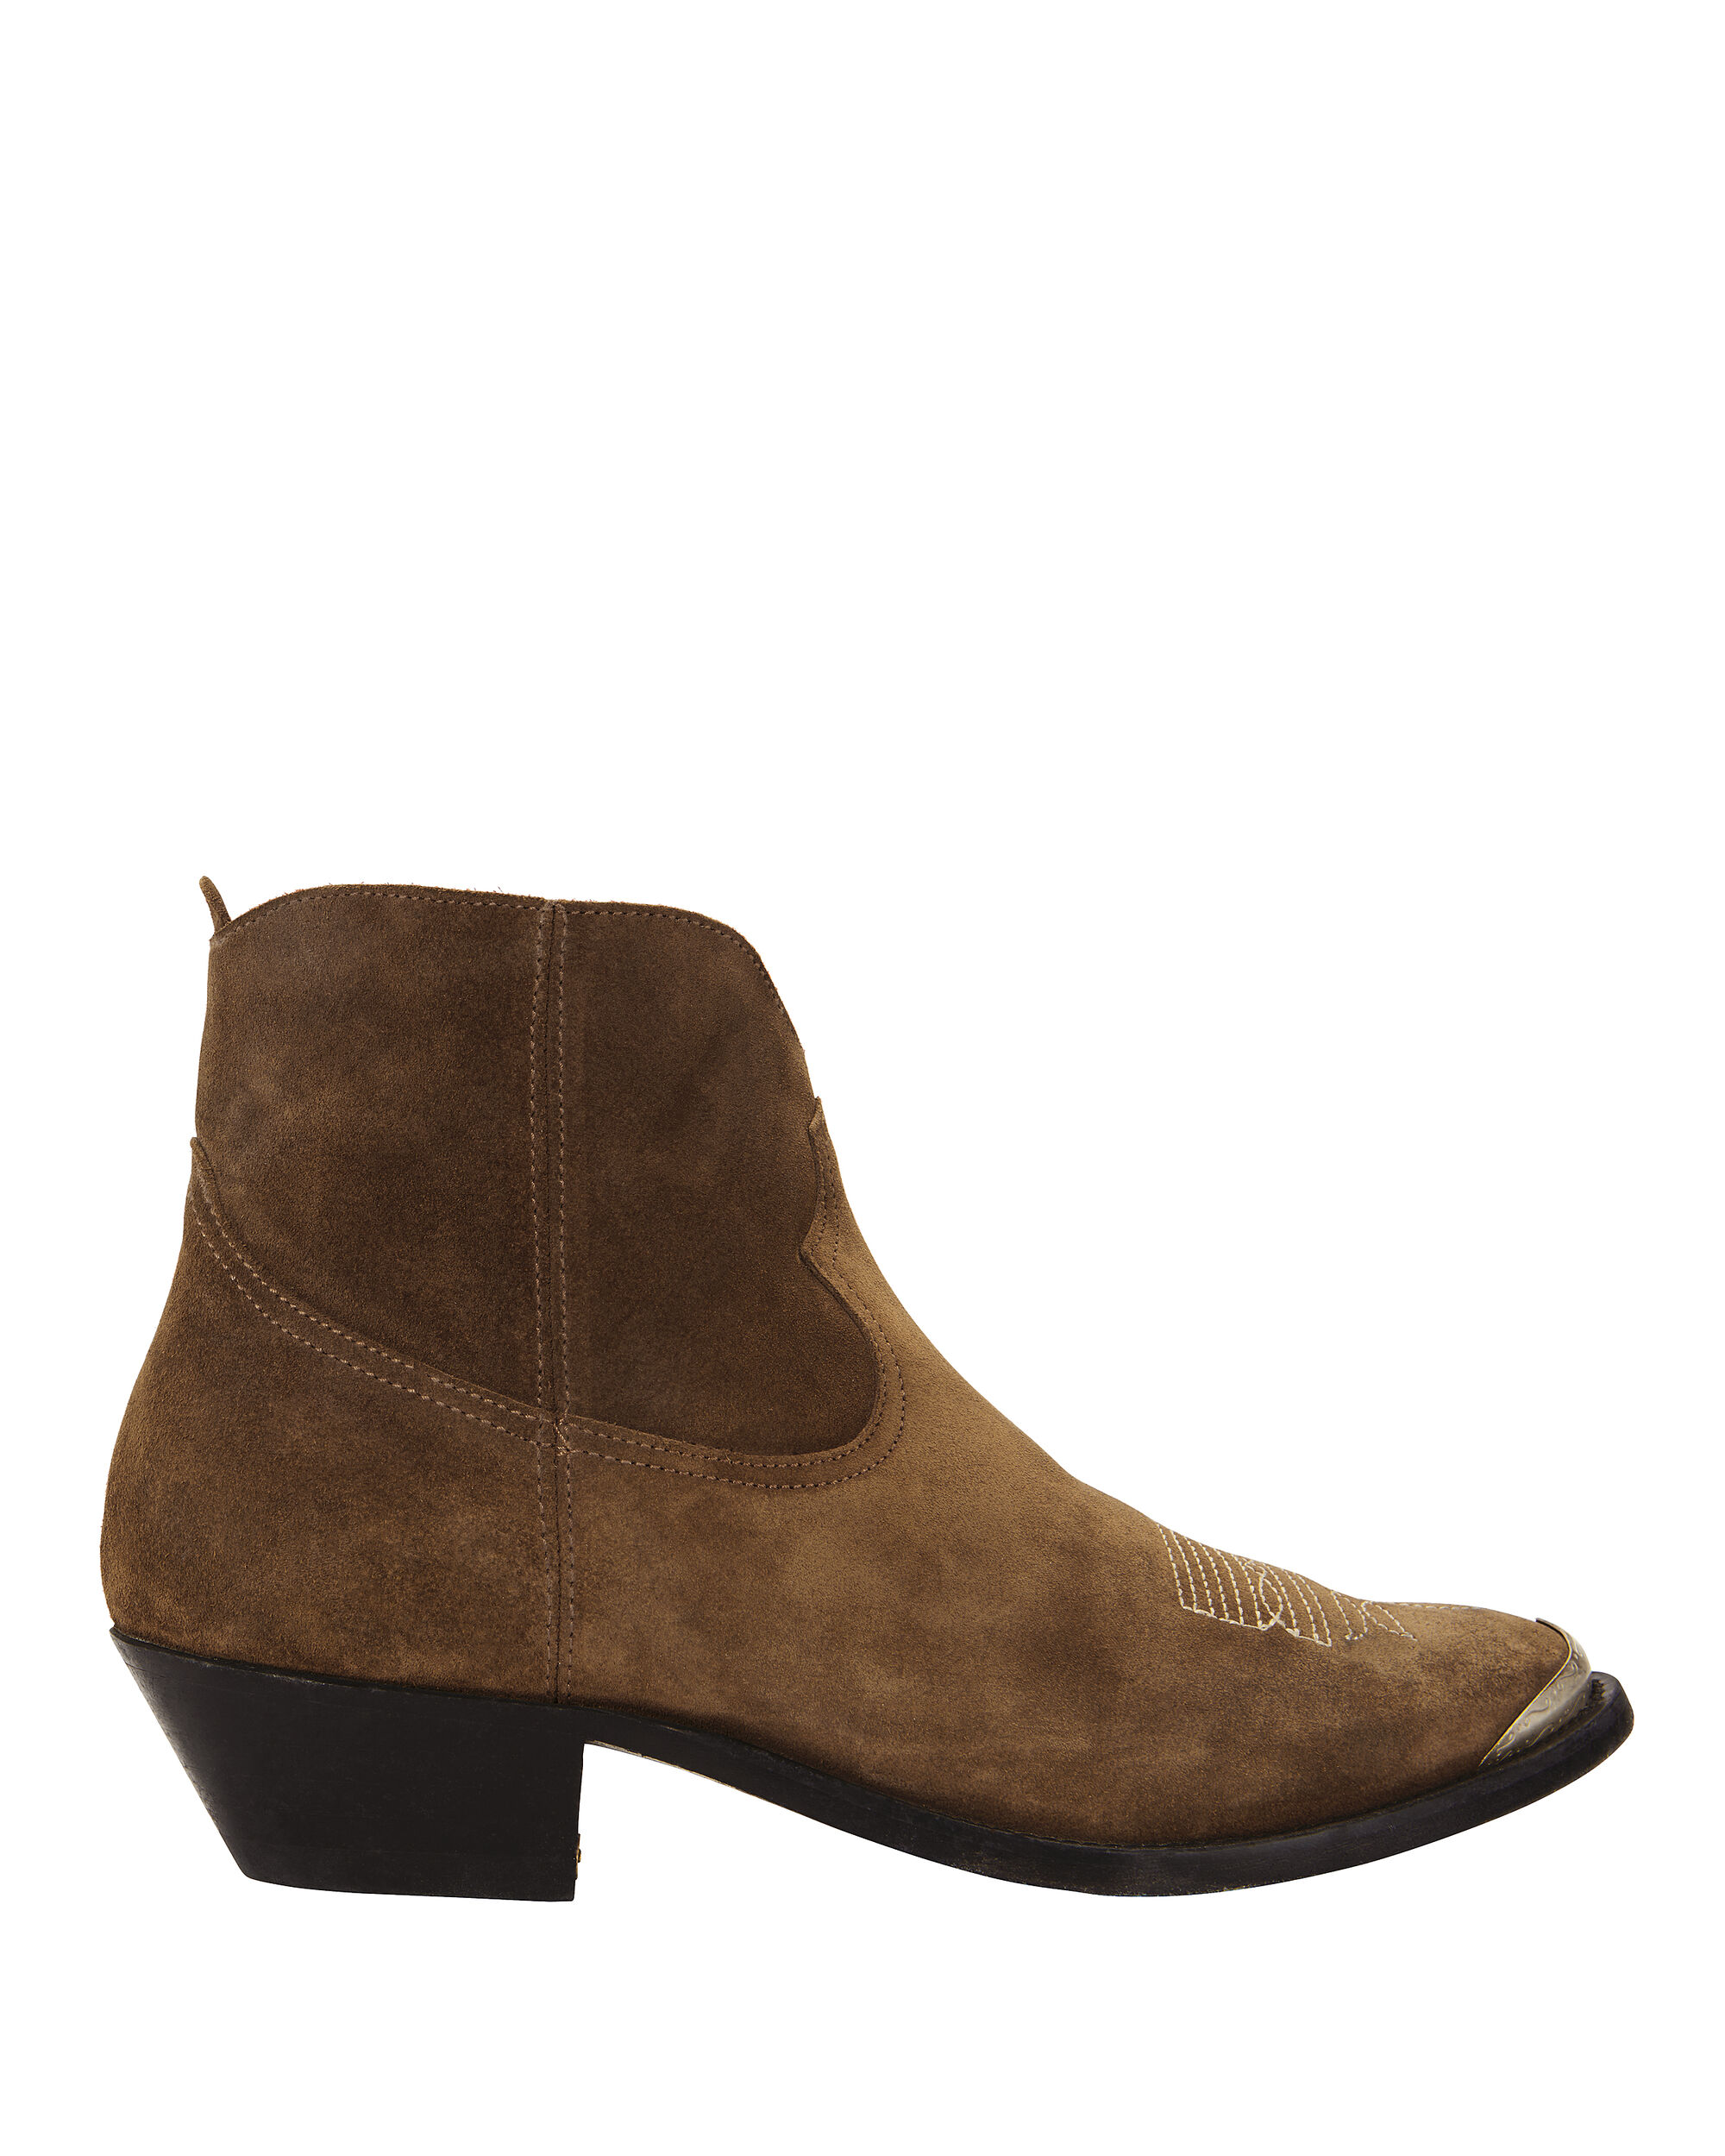 Young Western Suede Booties, BROWN, hi-res